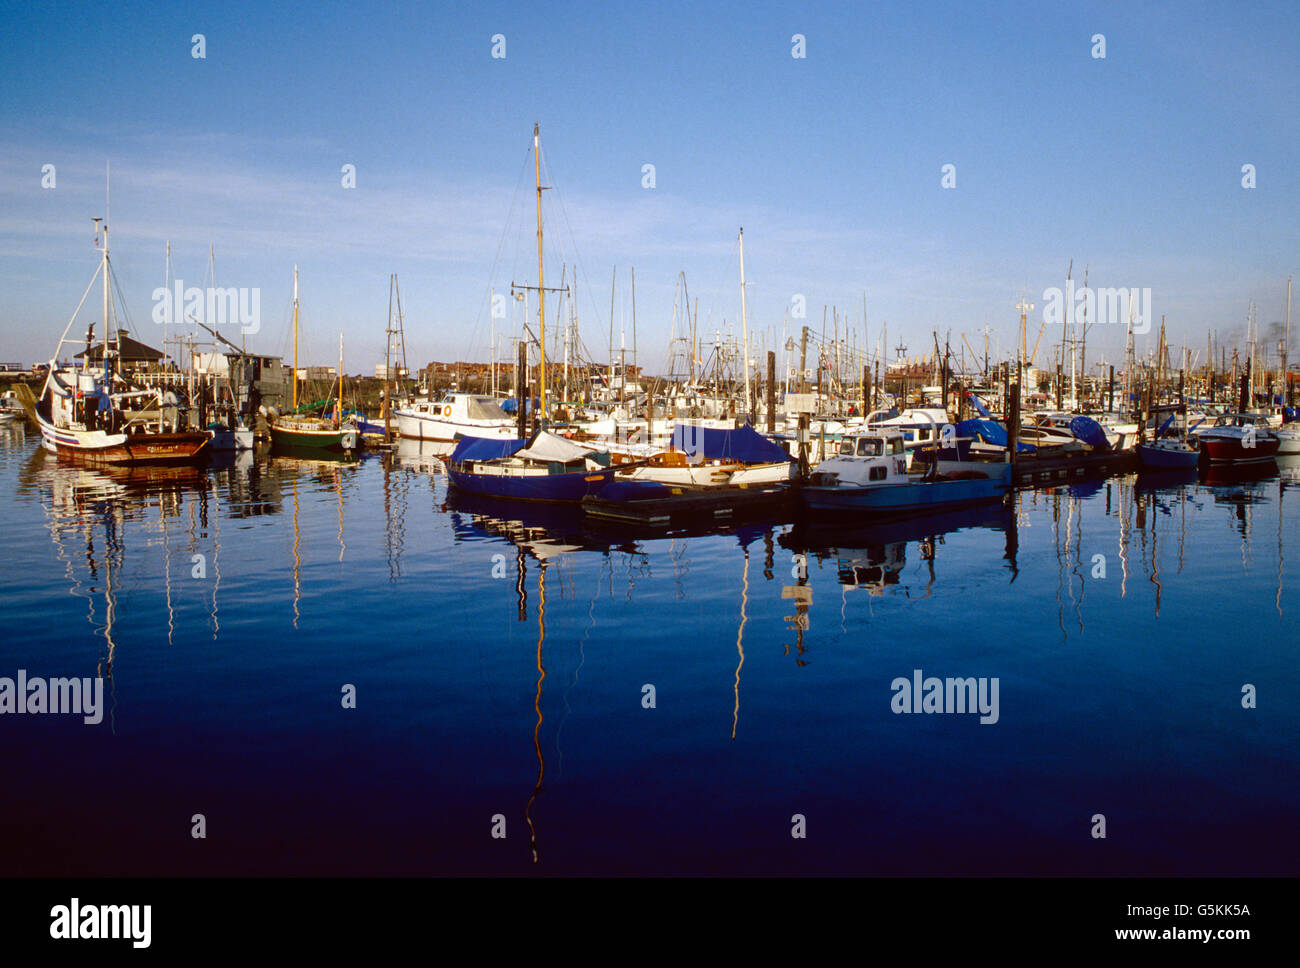 Boats moored at a marina at Discovery Bay, Strait of Juan de Fuca, Olympic Peninsula, Washington, USA - Stock Image